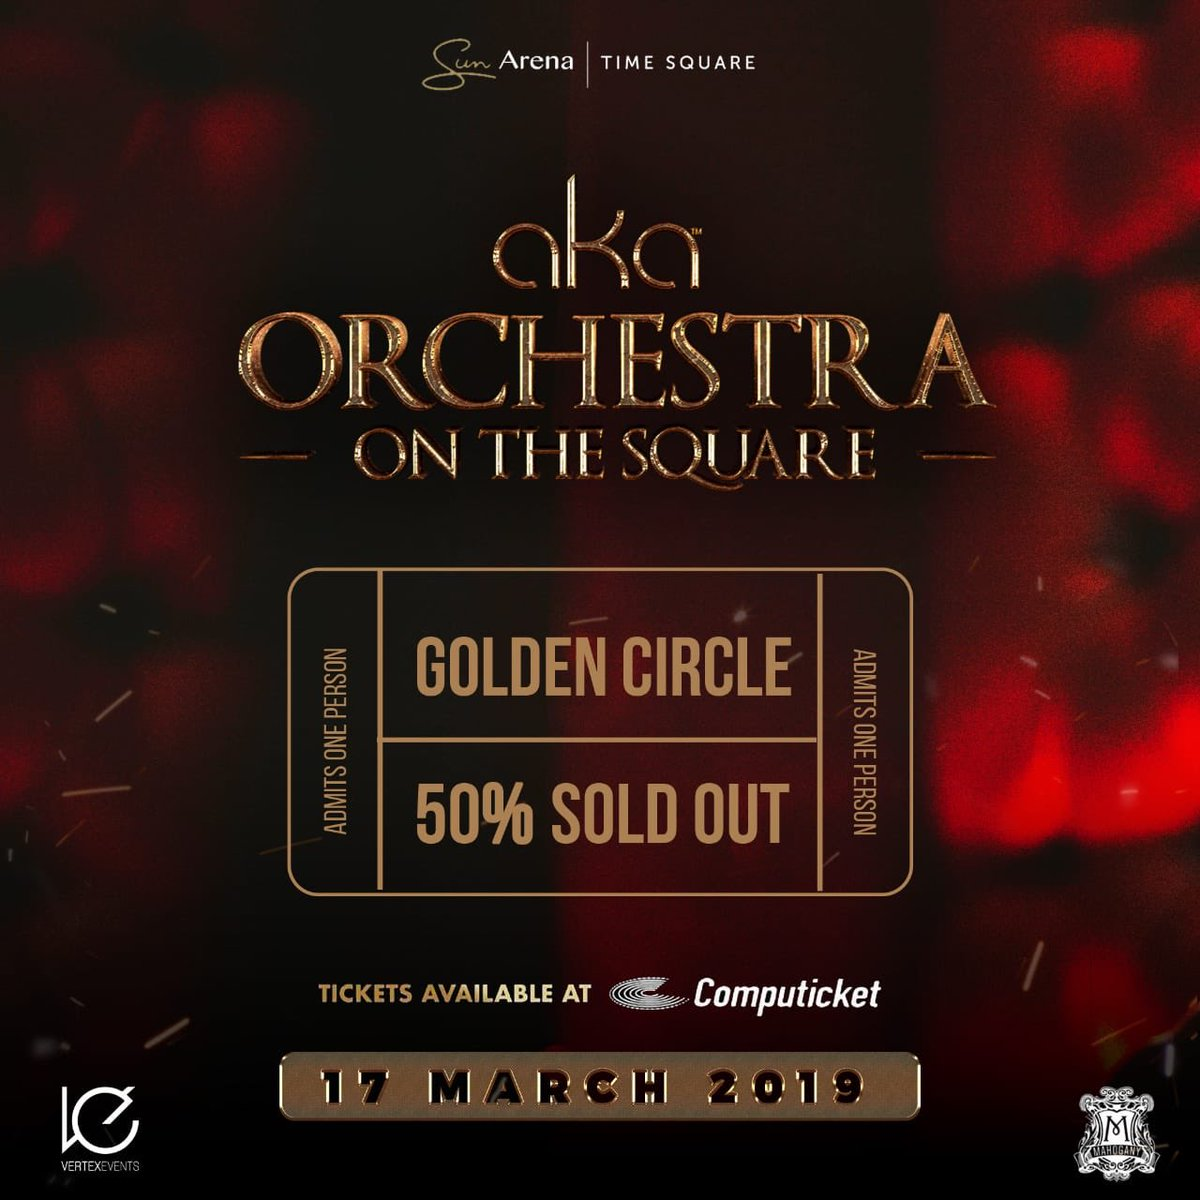 Golden Circle for #AkaOrchestraOnTheSquare 50% sold out. Don't sleep. Tickets available at @Computicket 🎟